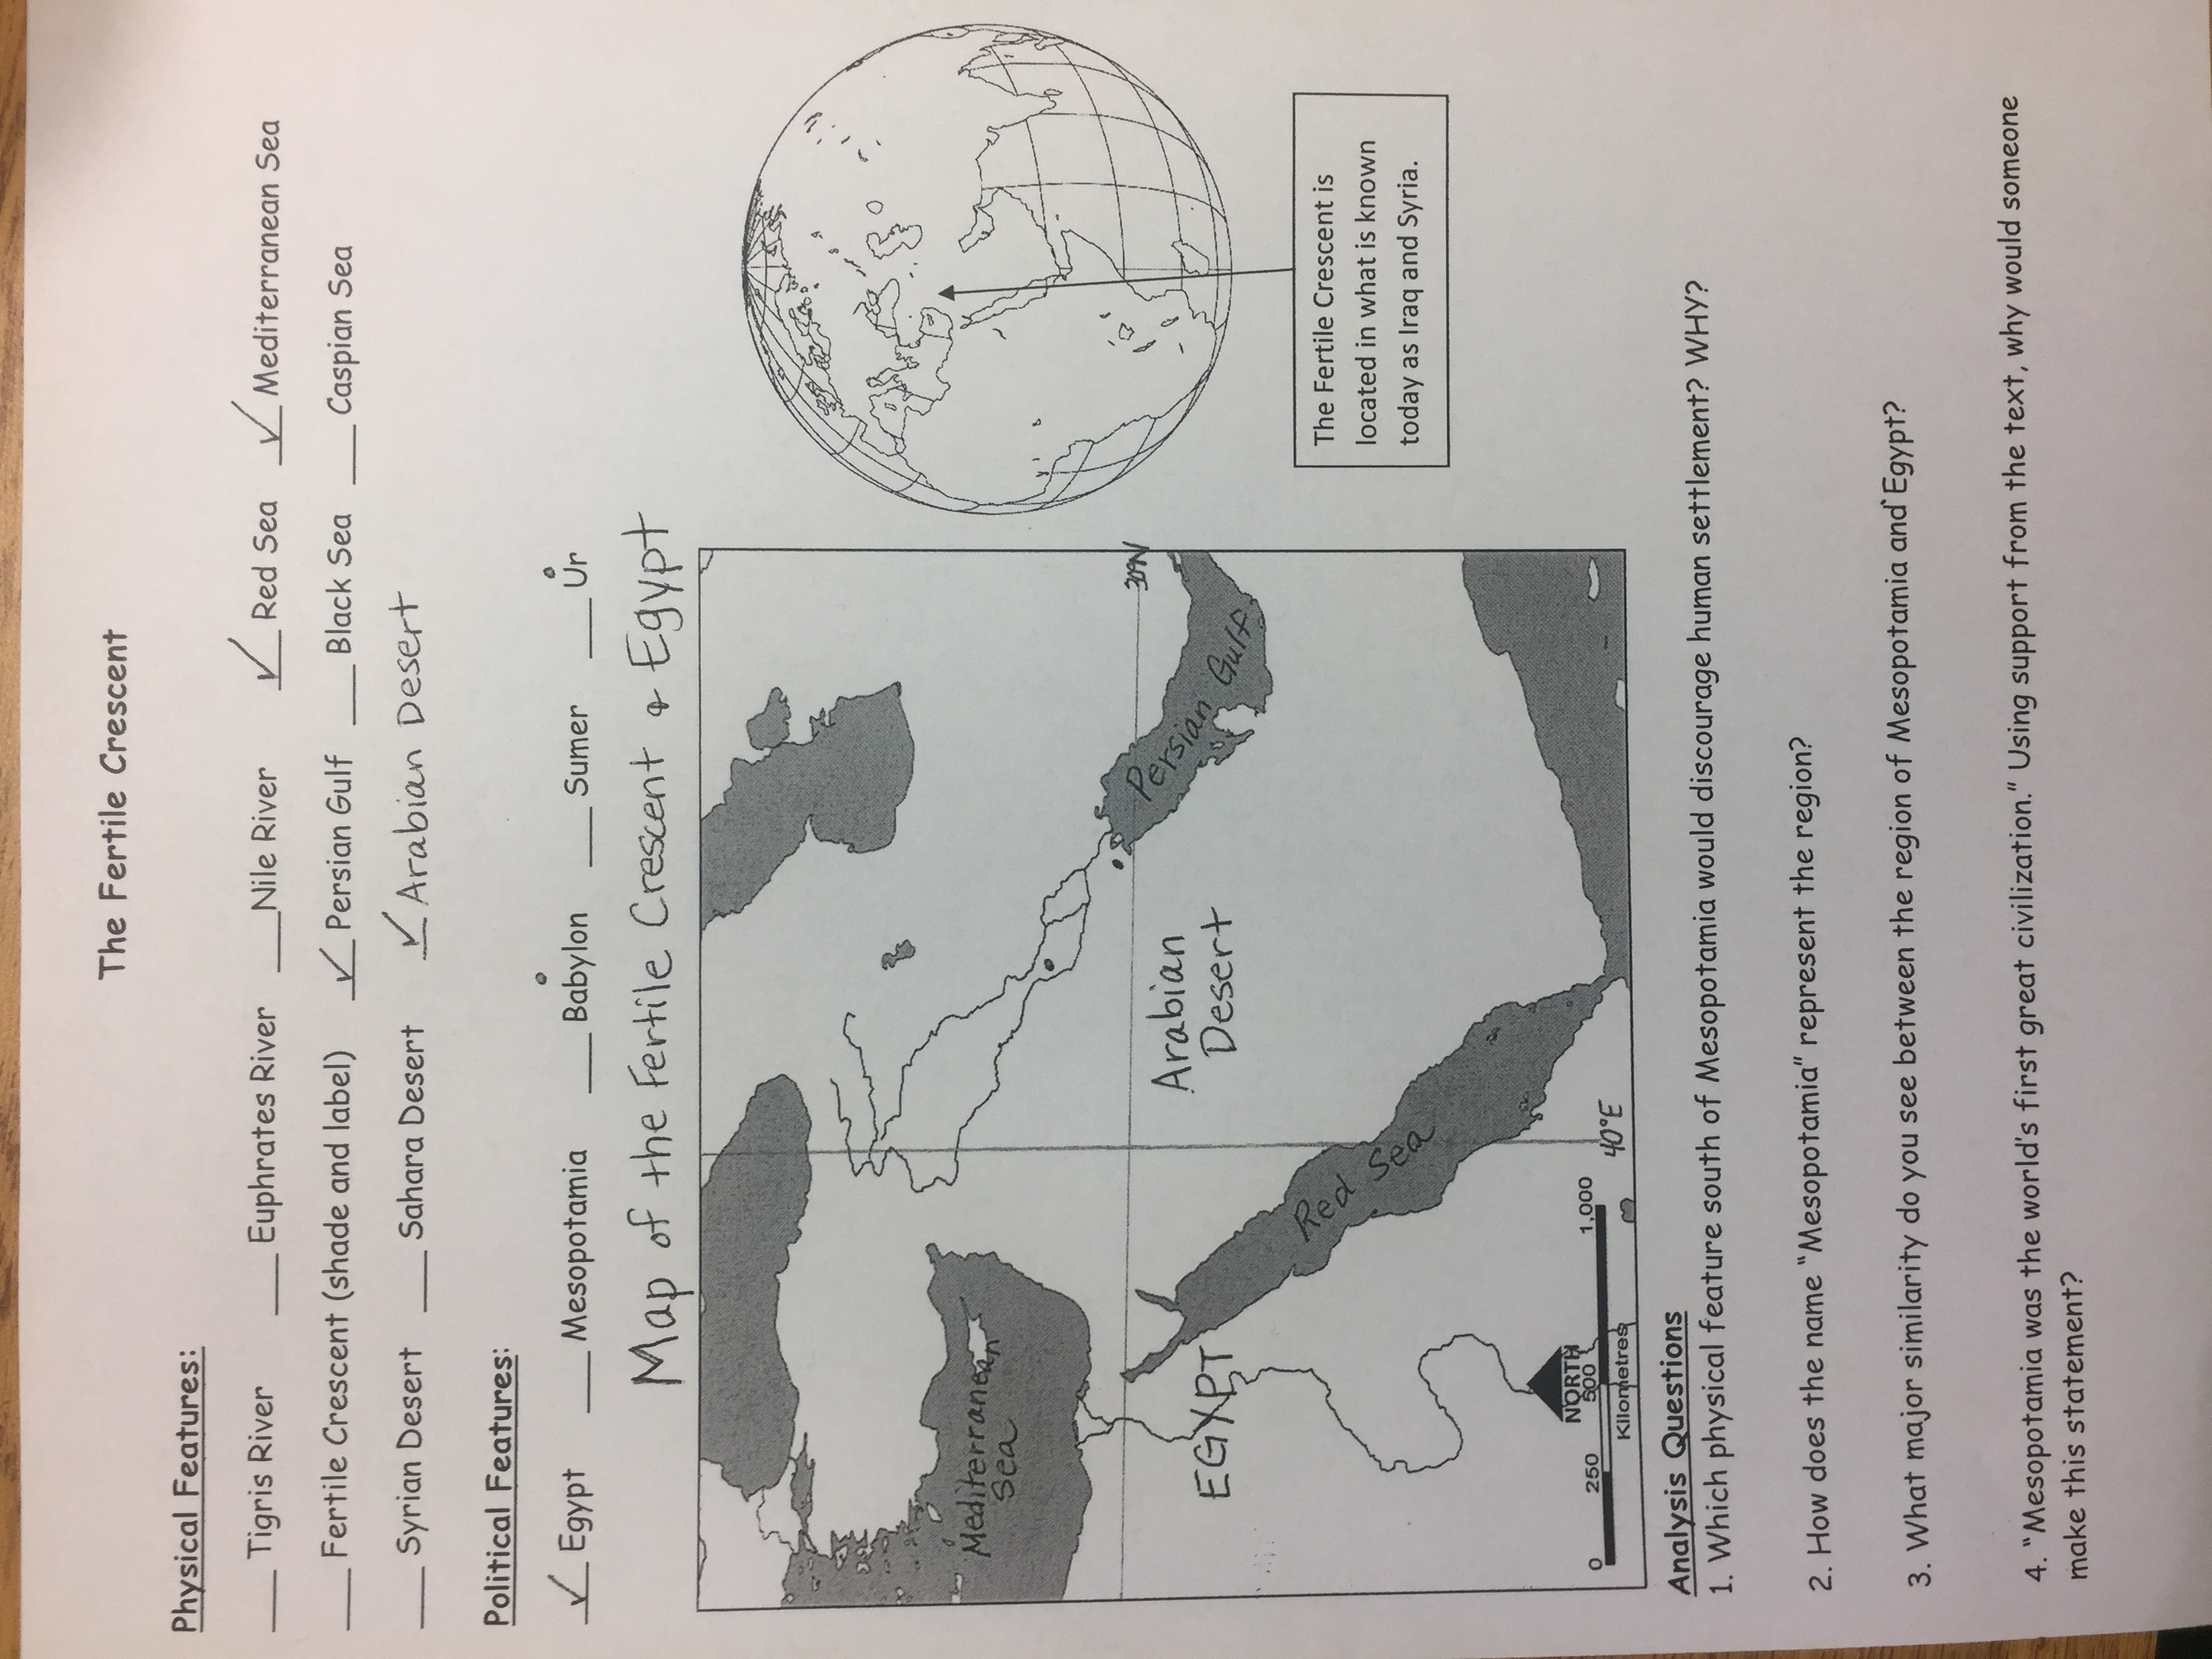 Social studies map of fertile crescent projected in class picture of p 320 of textbook study sheet on mesopotamia mesopotamia reading questions gumiabroncs Images